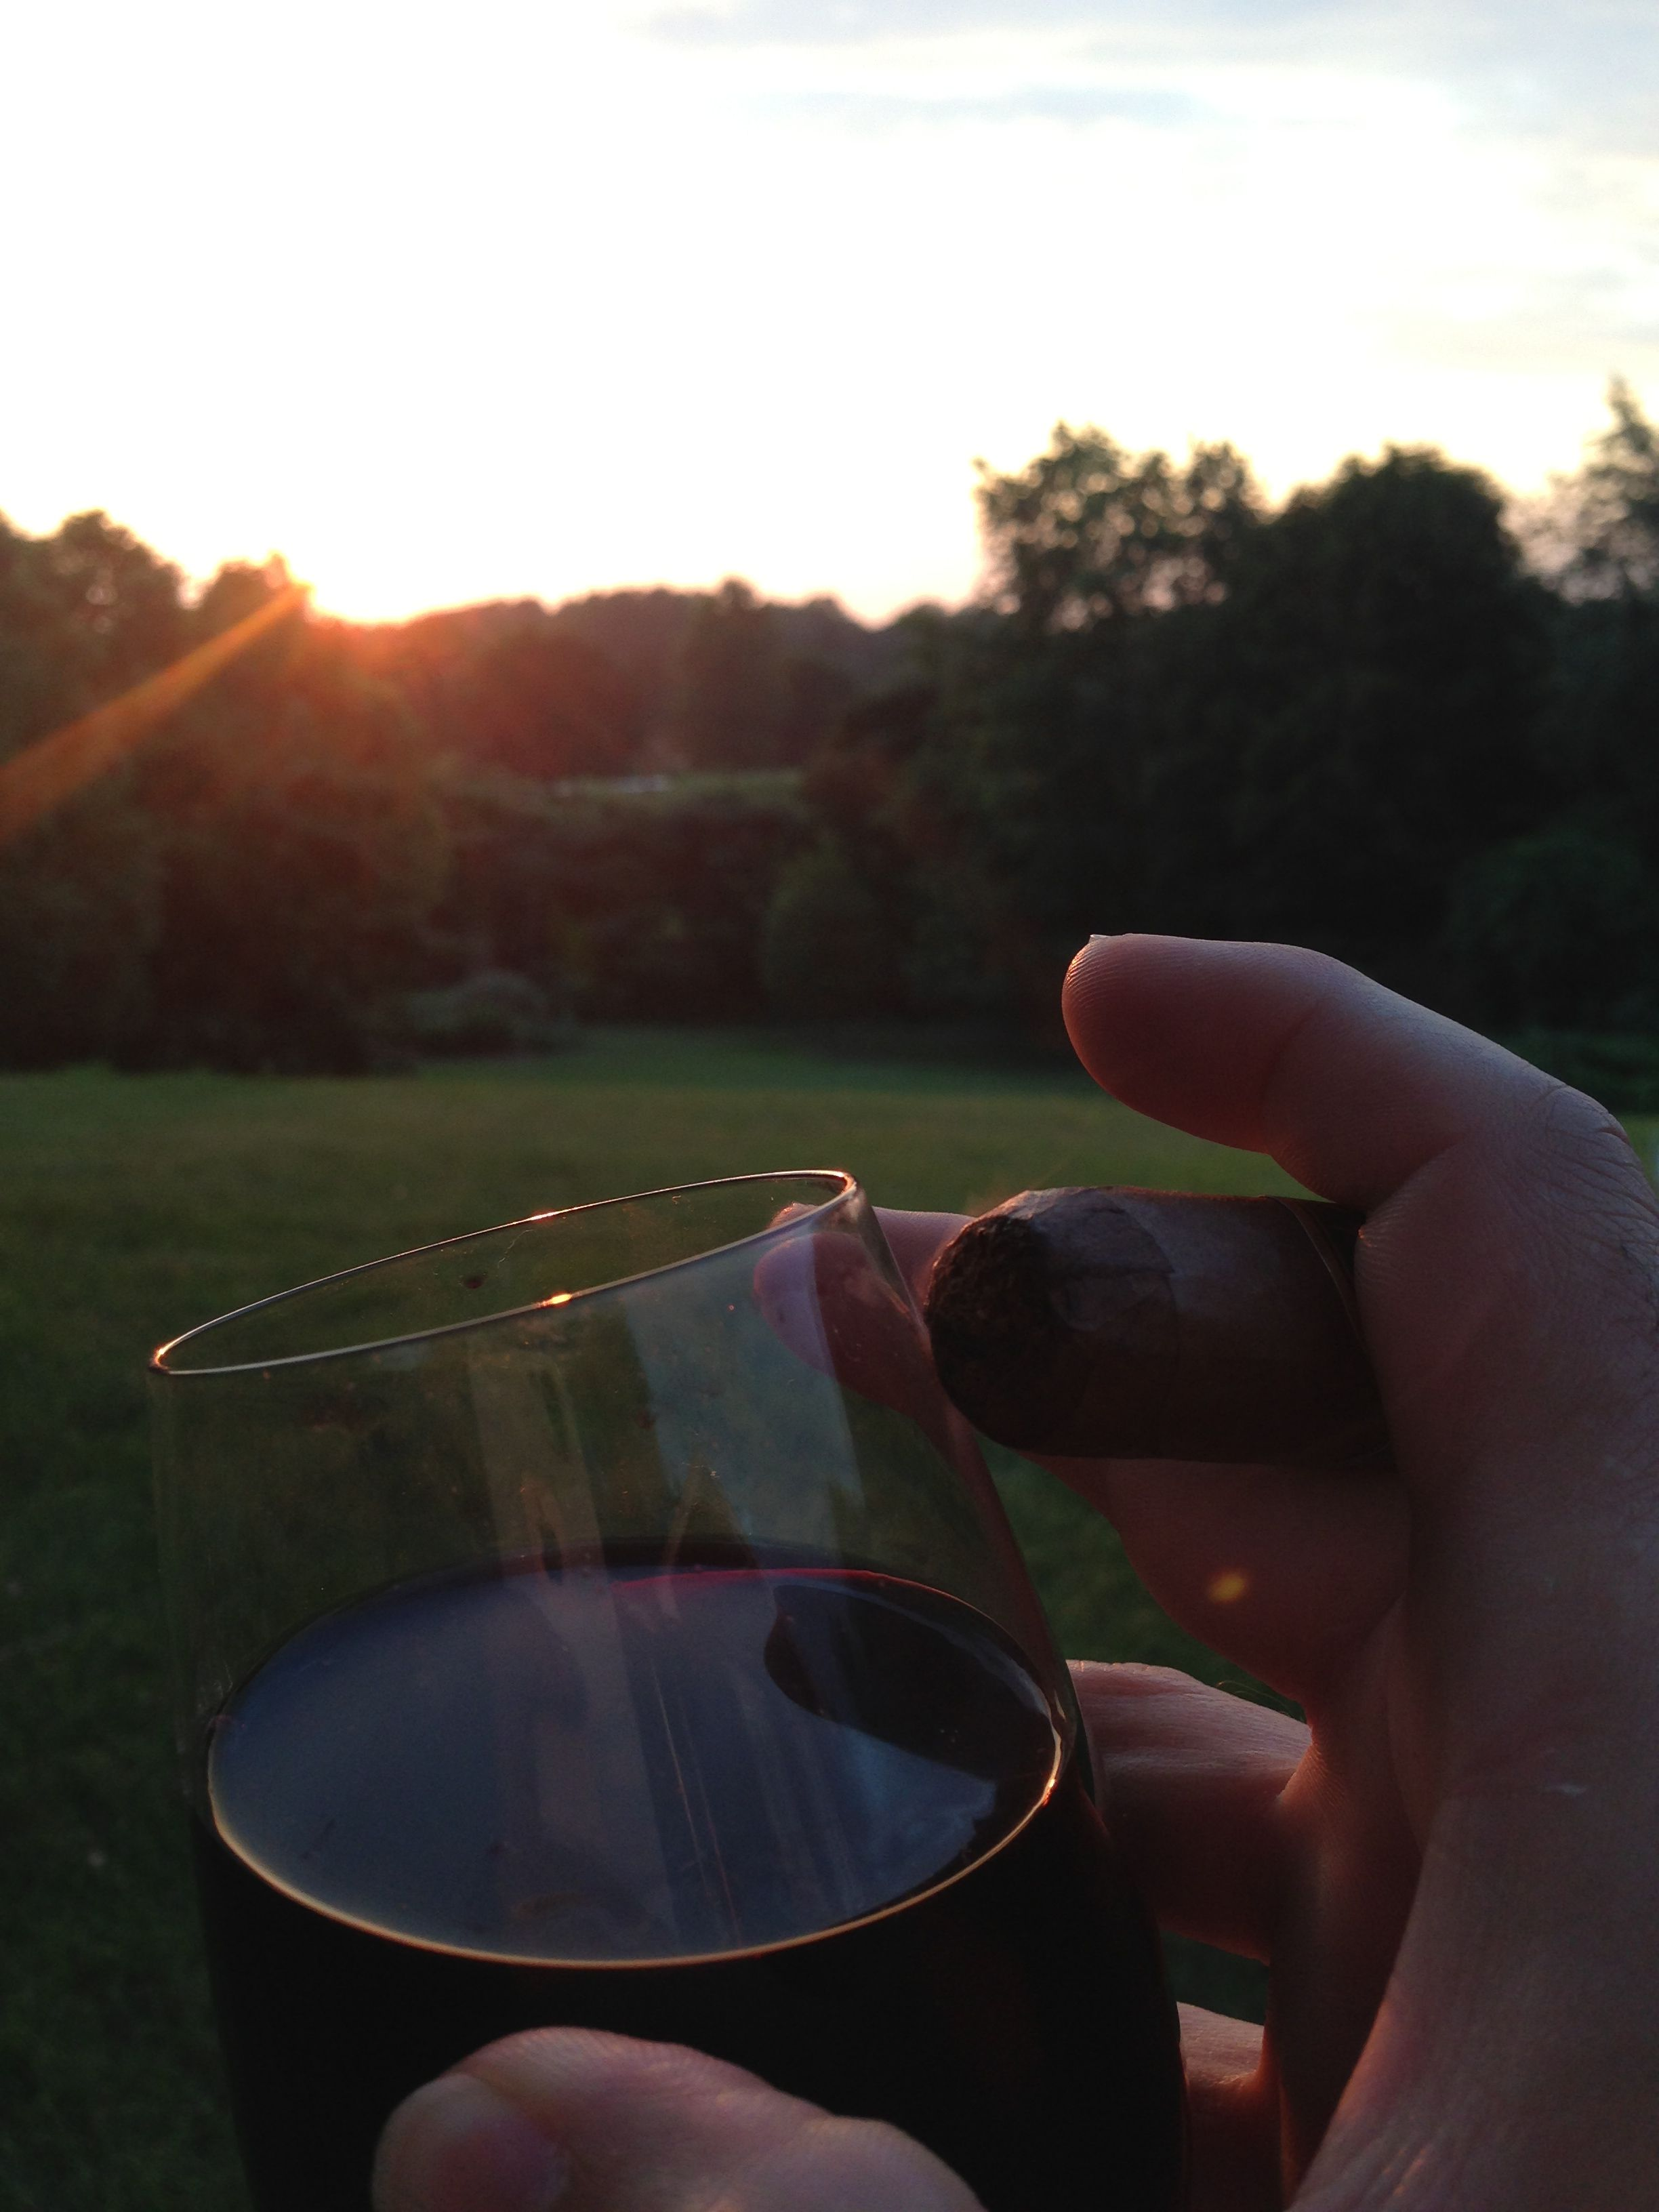 Thee way to enjoy a sunset, a glass of Cab, a nice cigar, a beautiful woman-my wife, and birds singing the day away.